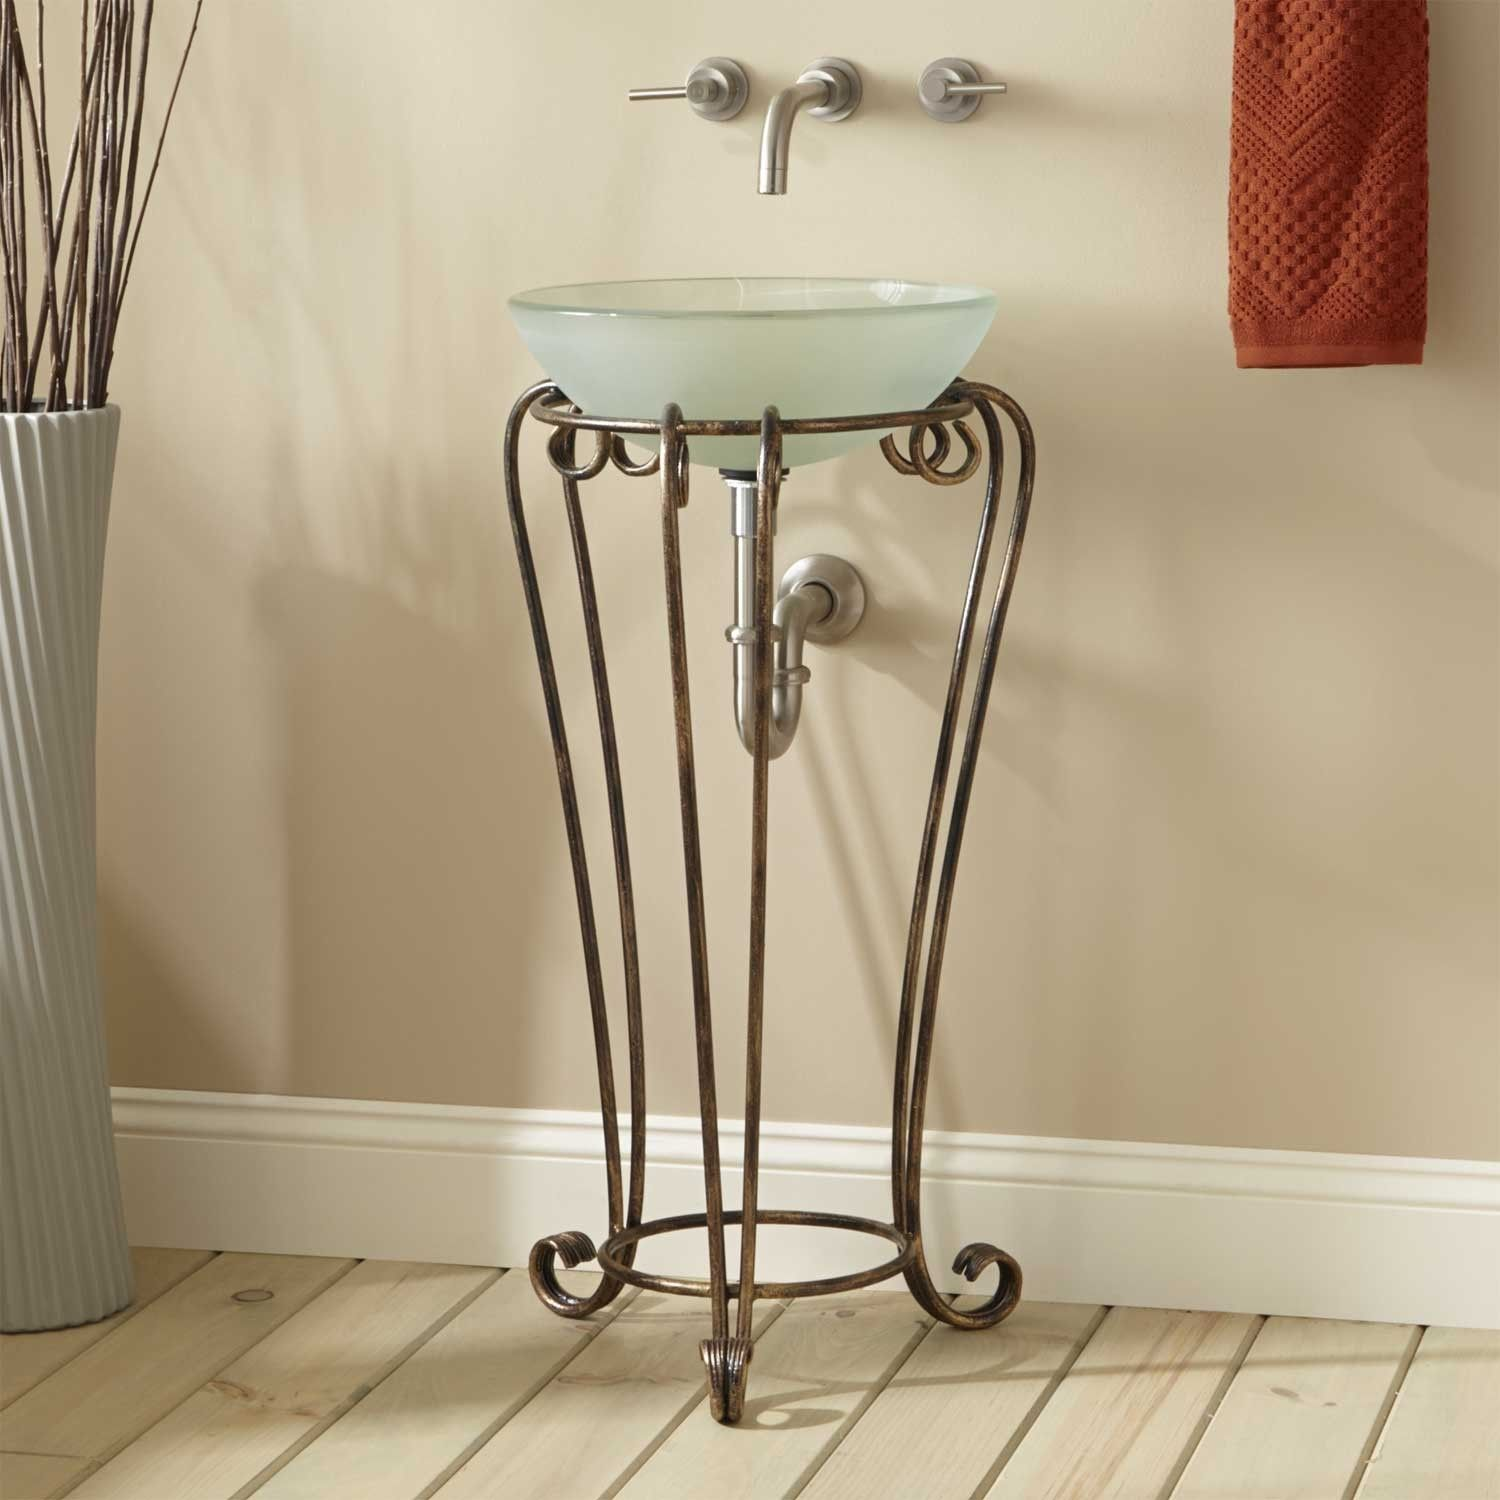 Altan Wrought Iron Vessel Sink Stand Bathroom Sinks Bathroom Bathroom Decor Luxury Wrought Iron Sink